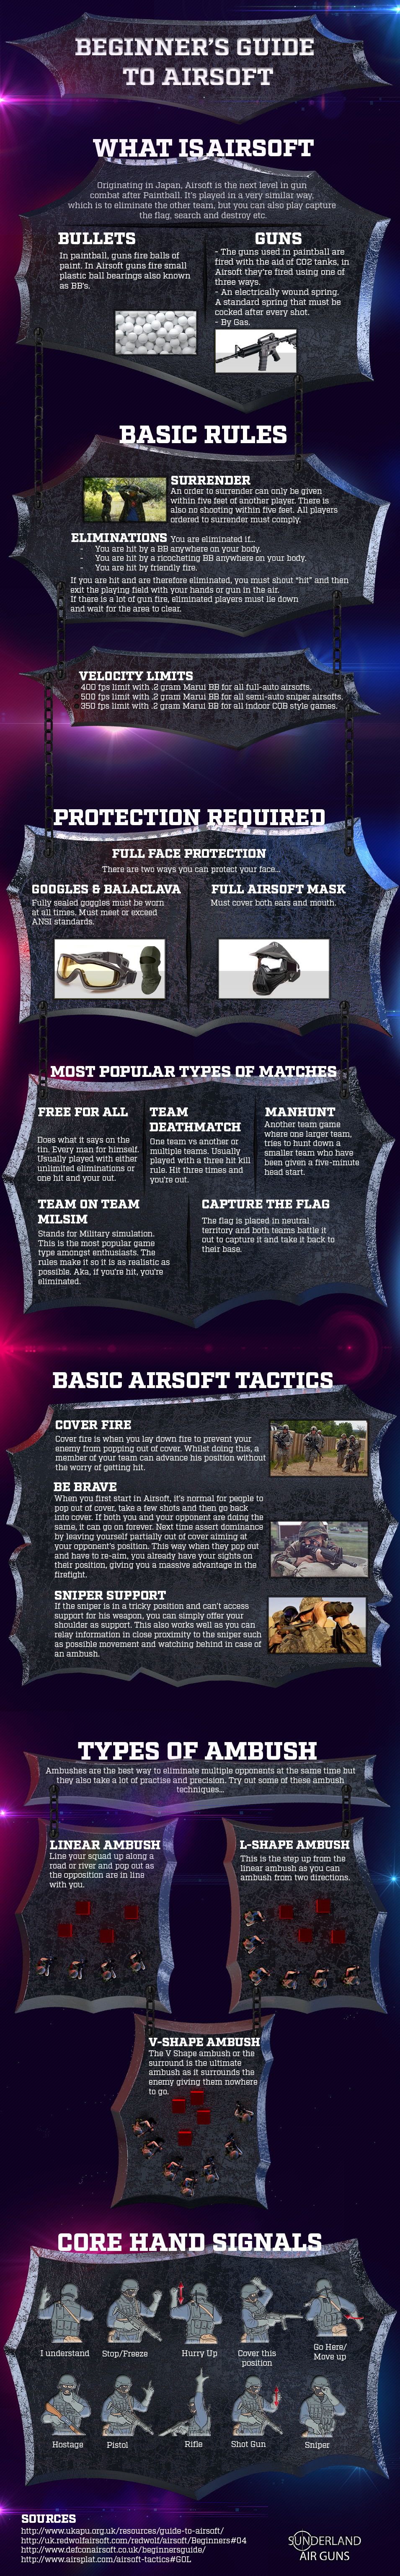 Airsoft Tips and beginner's guide.